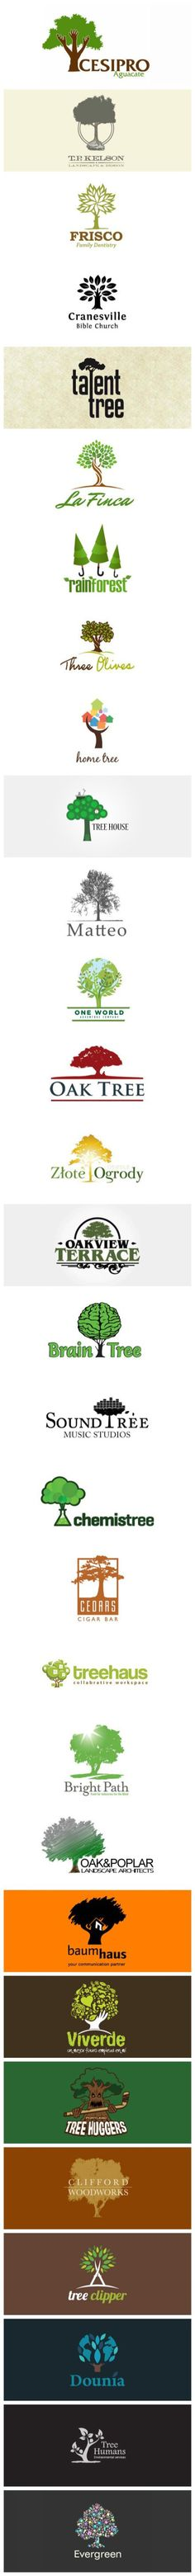 Tree Logos.   Very cool collection that could appear on #packaging. PD